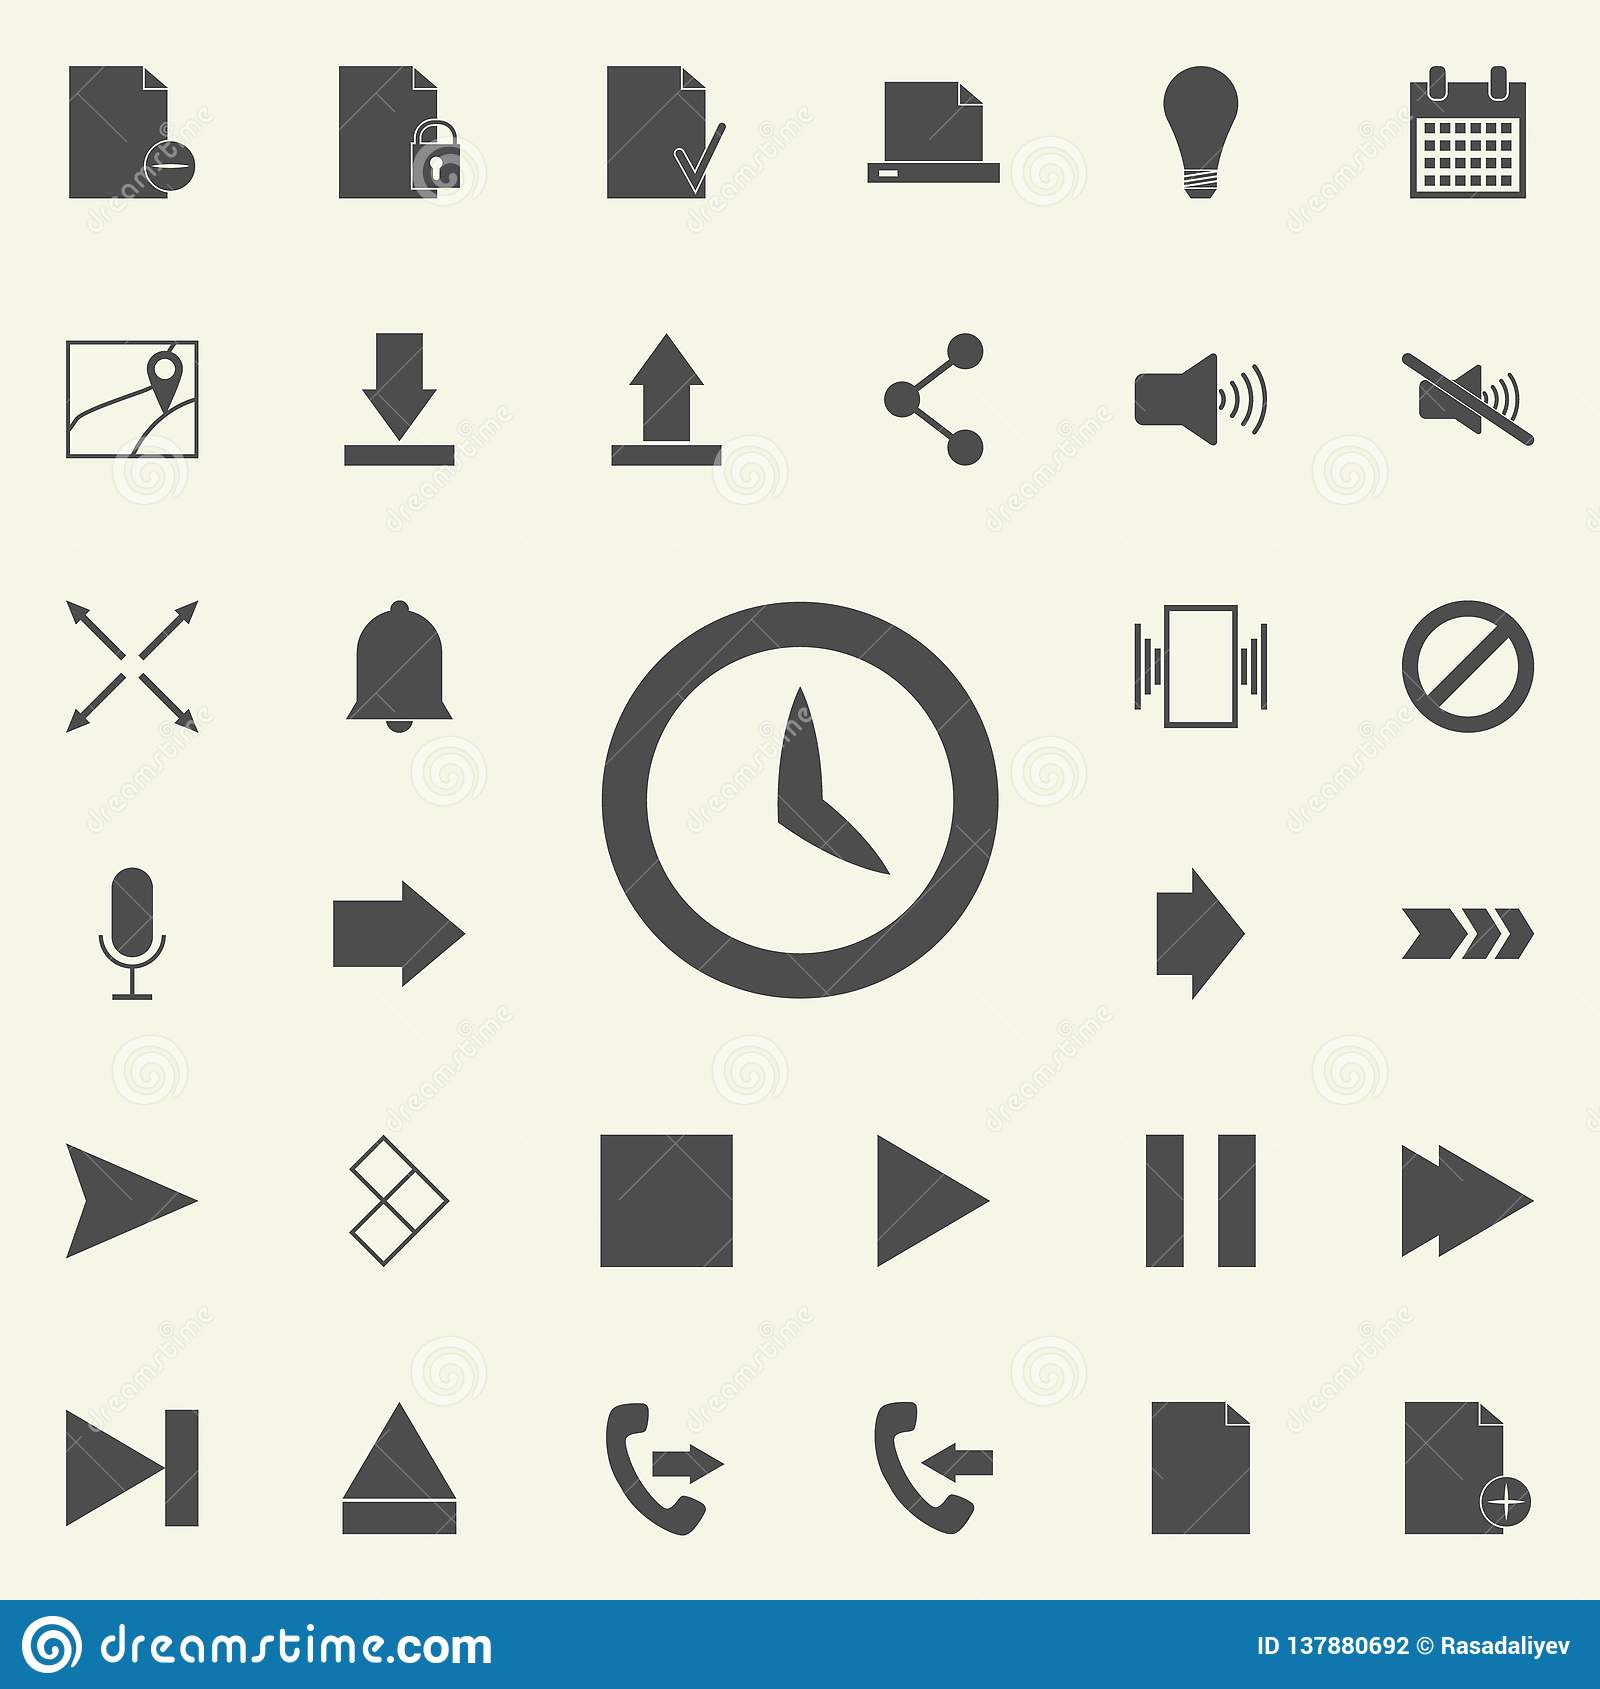 clock icon. web icons universal set for web and mobile